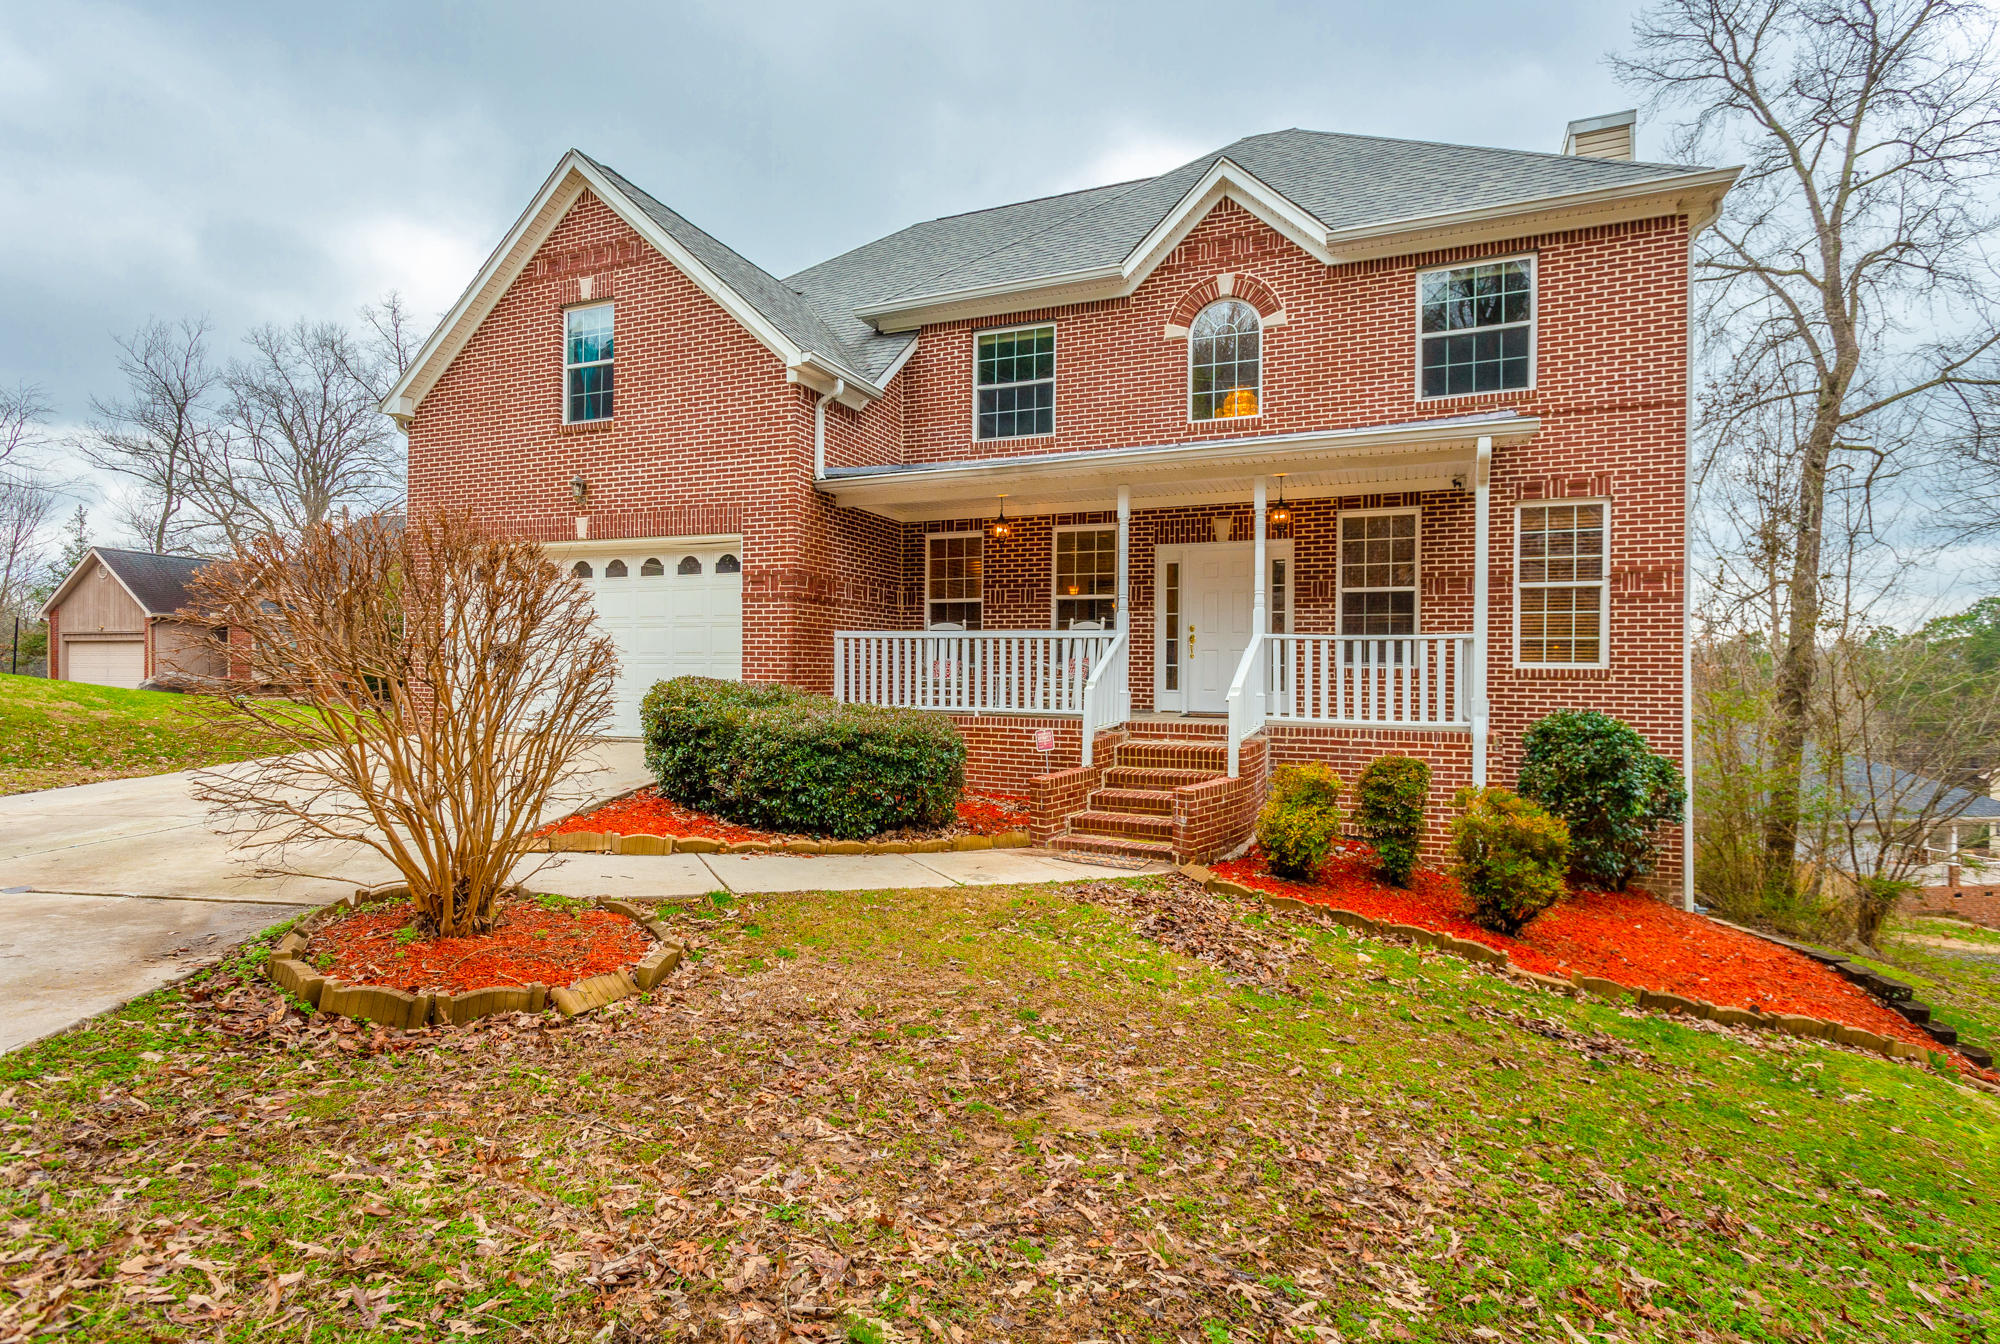 9714 Imperial Dr, Ooltewah, TN 37363